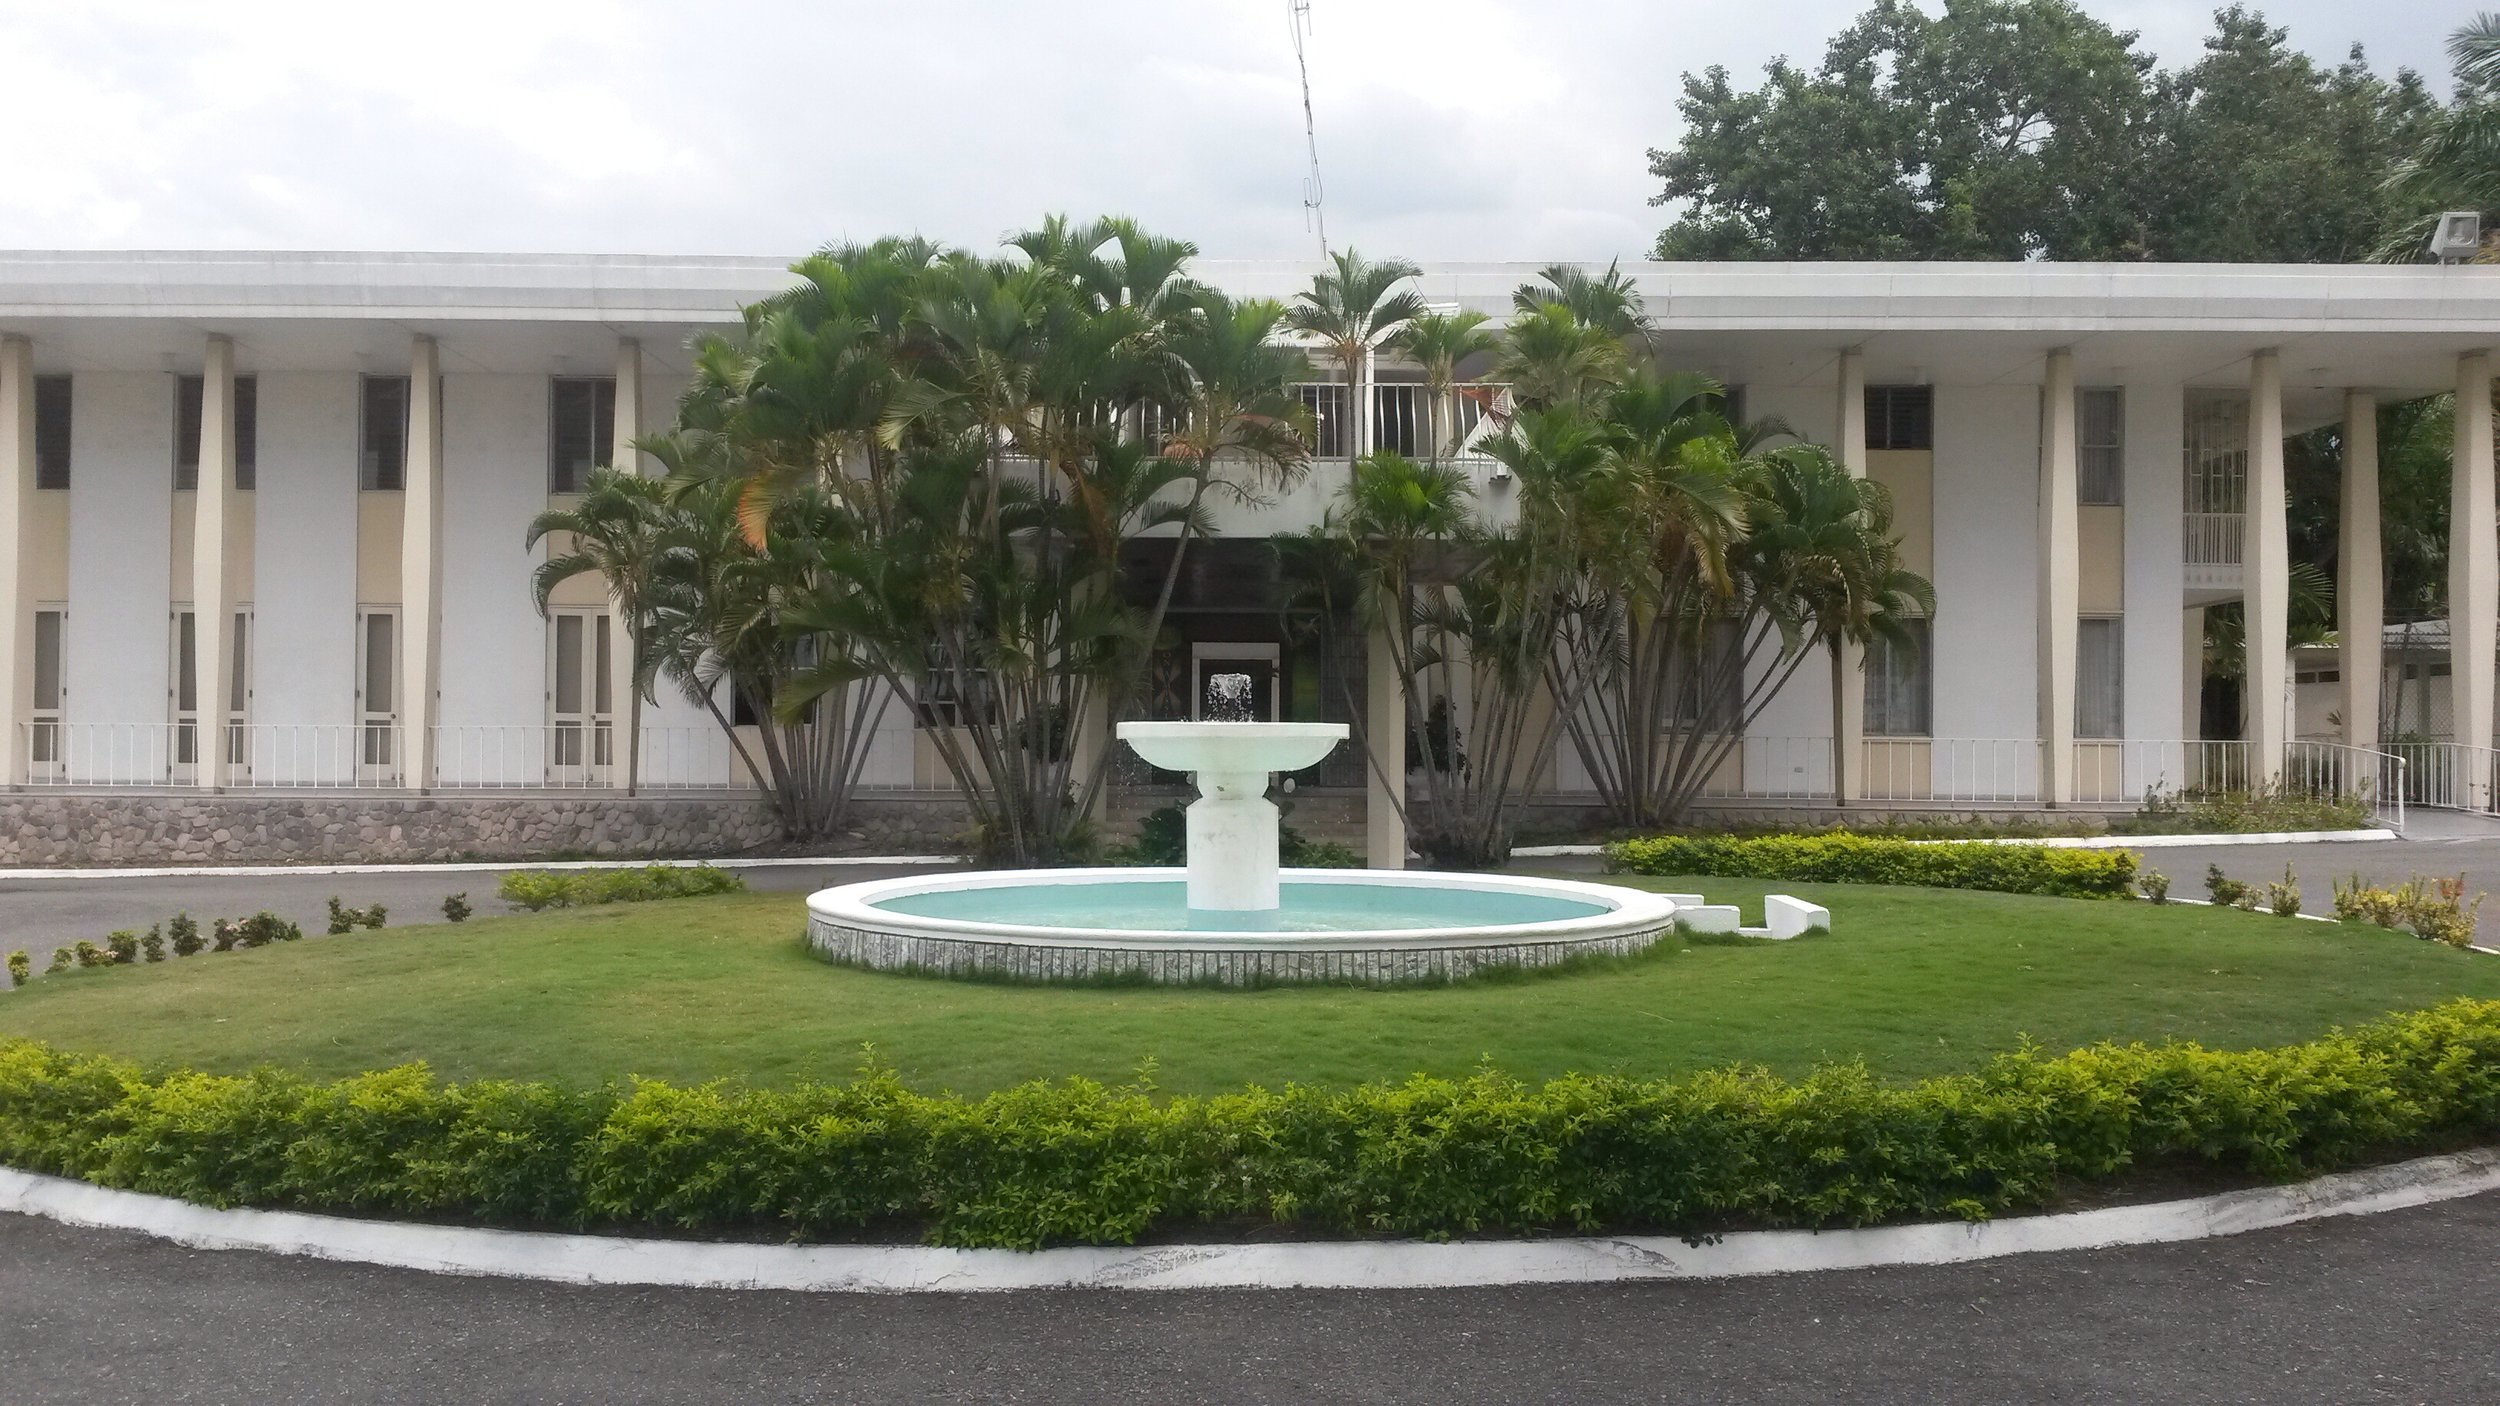 Jamaica House is home to the official residence and offices of Prime Minister Andrew Holness